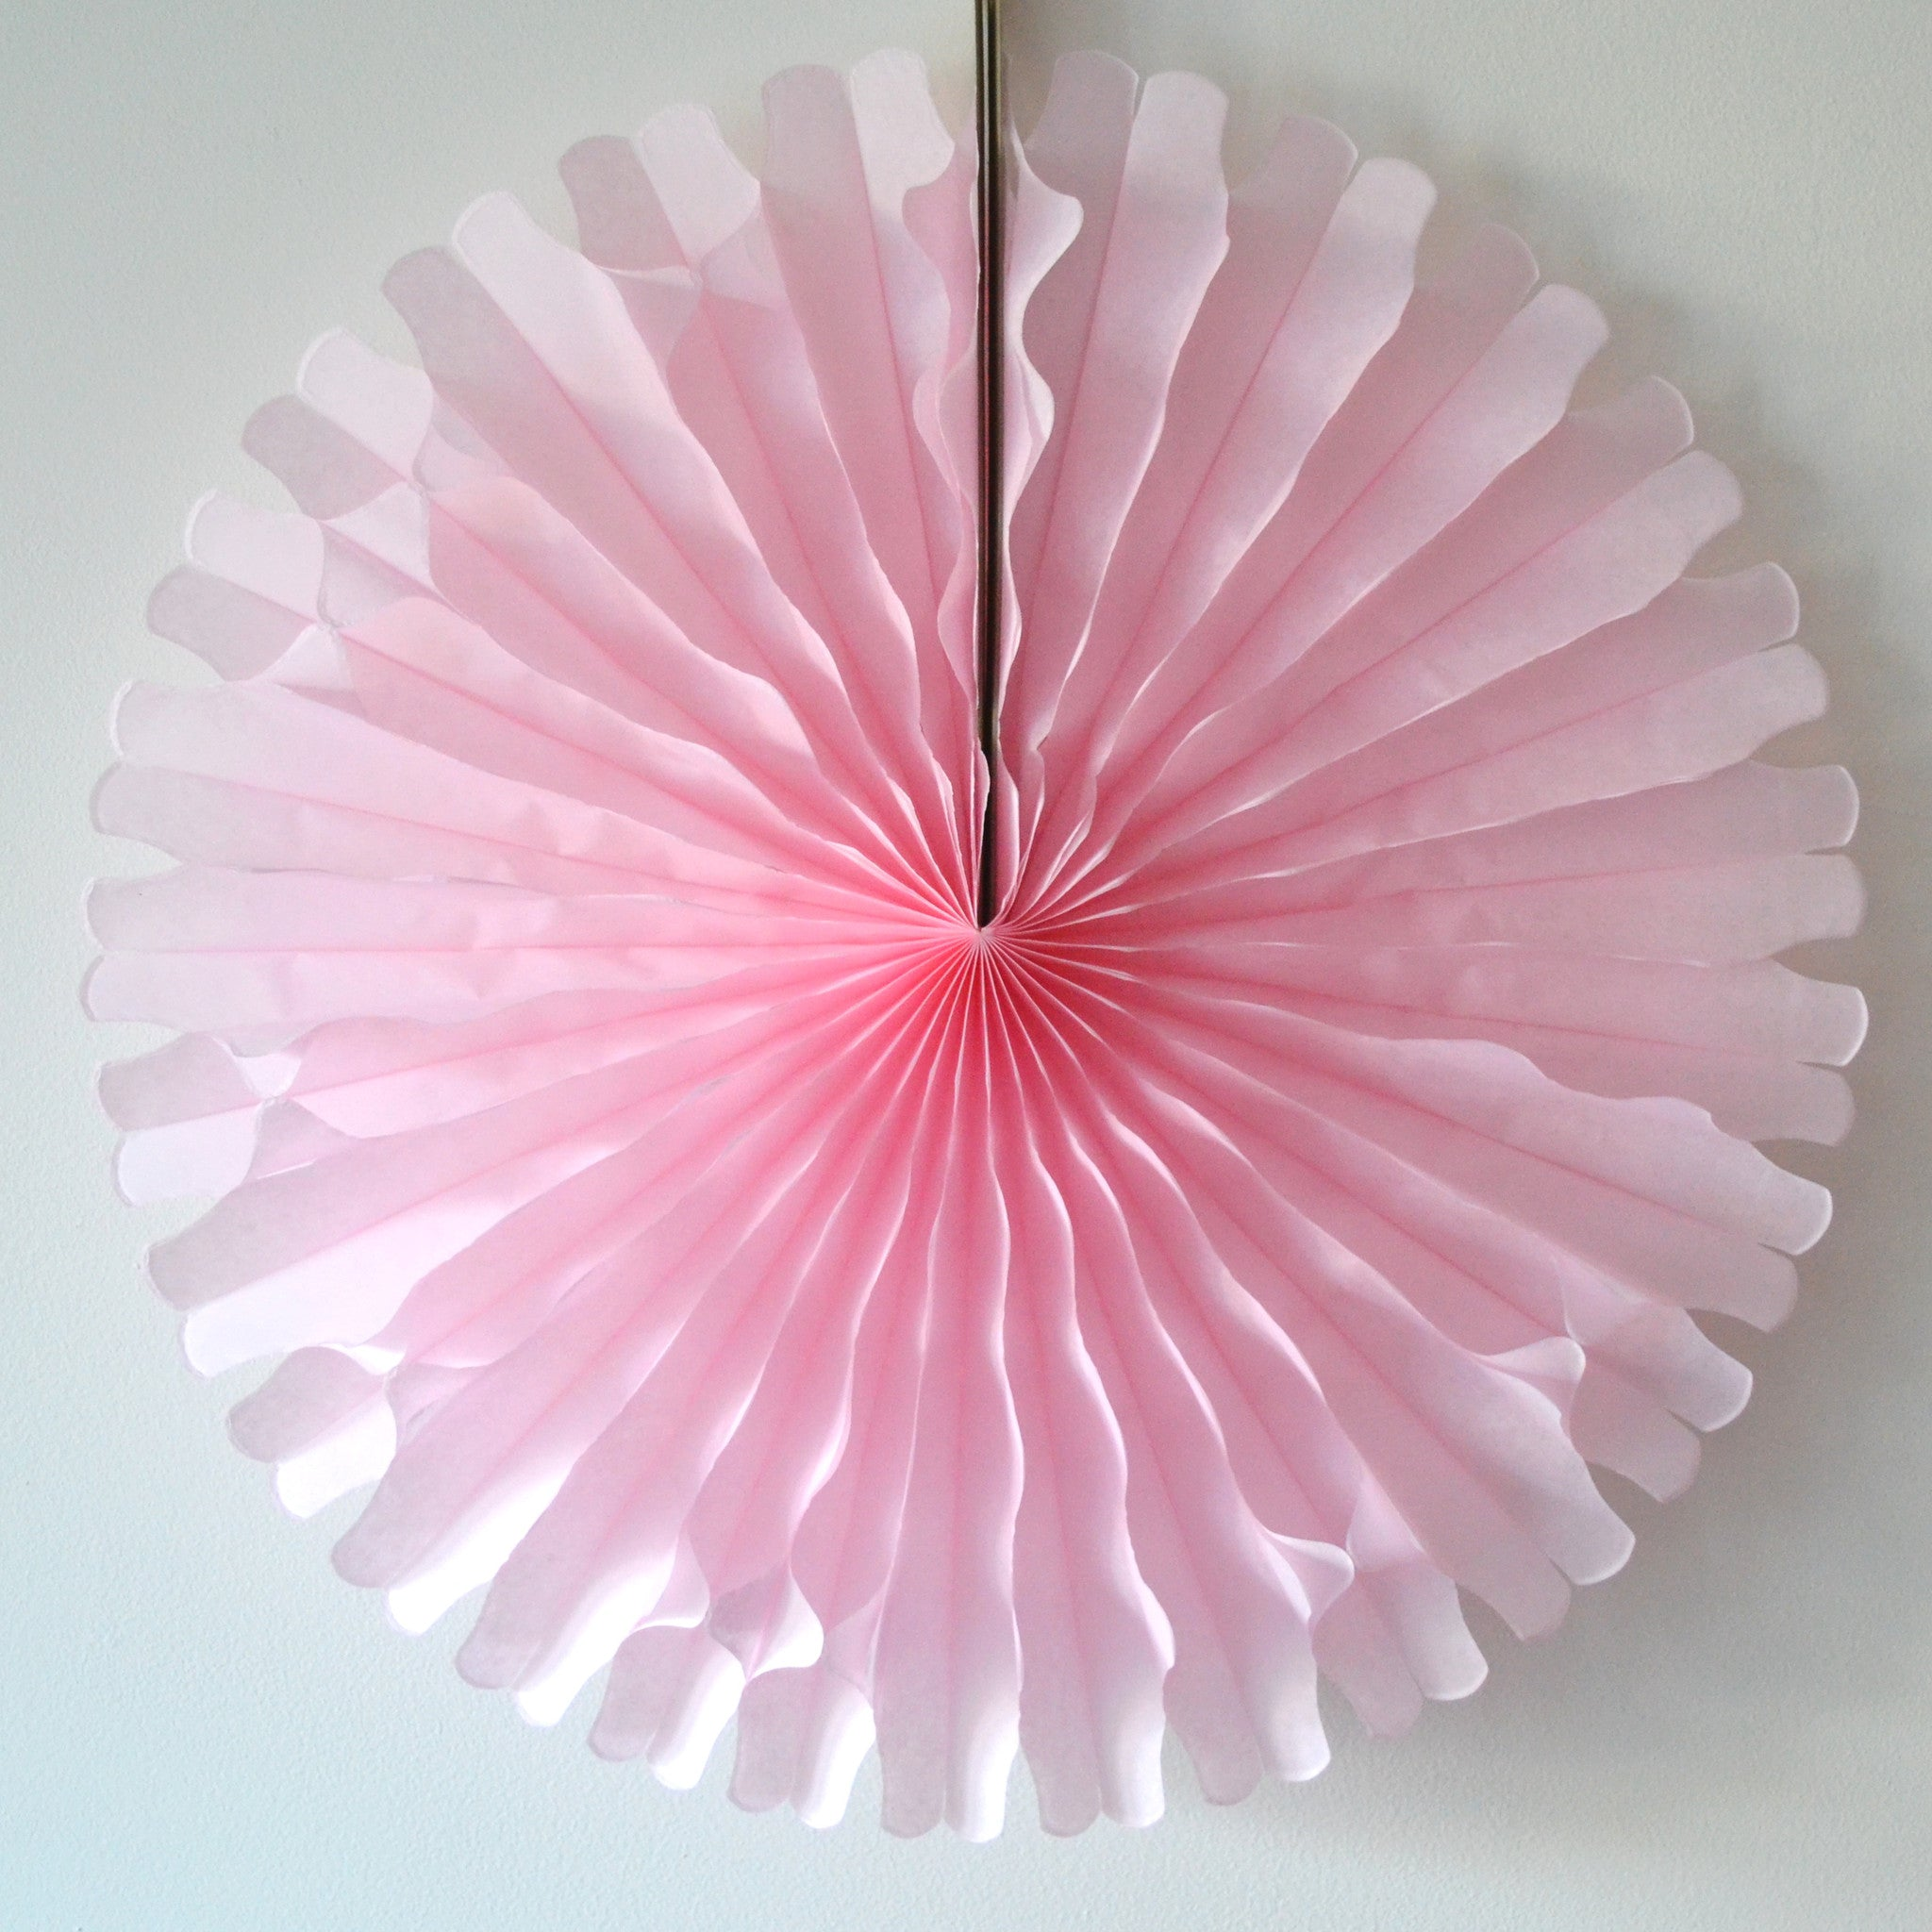 Light Pink Paper Fan 18 inch - The Sweet Hostess